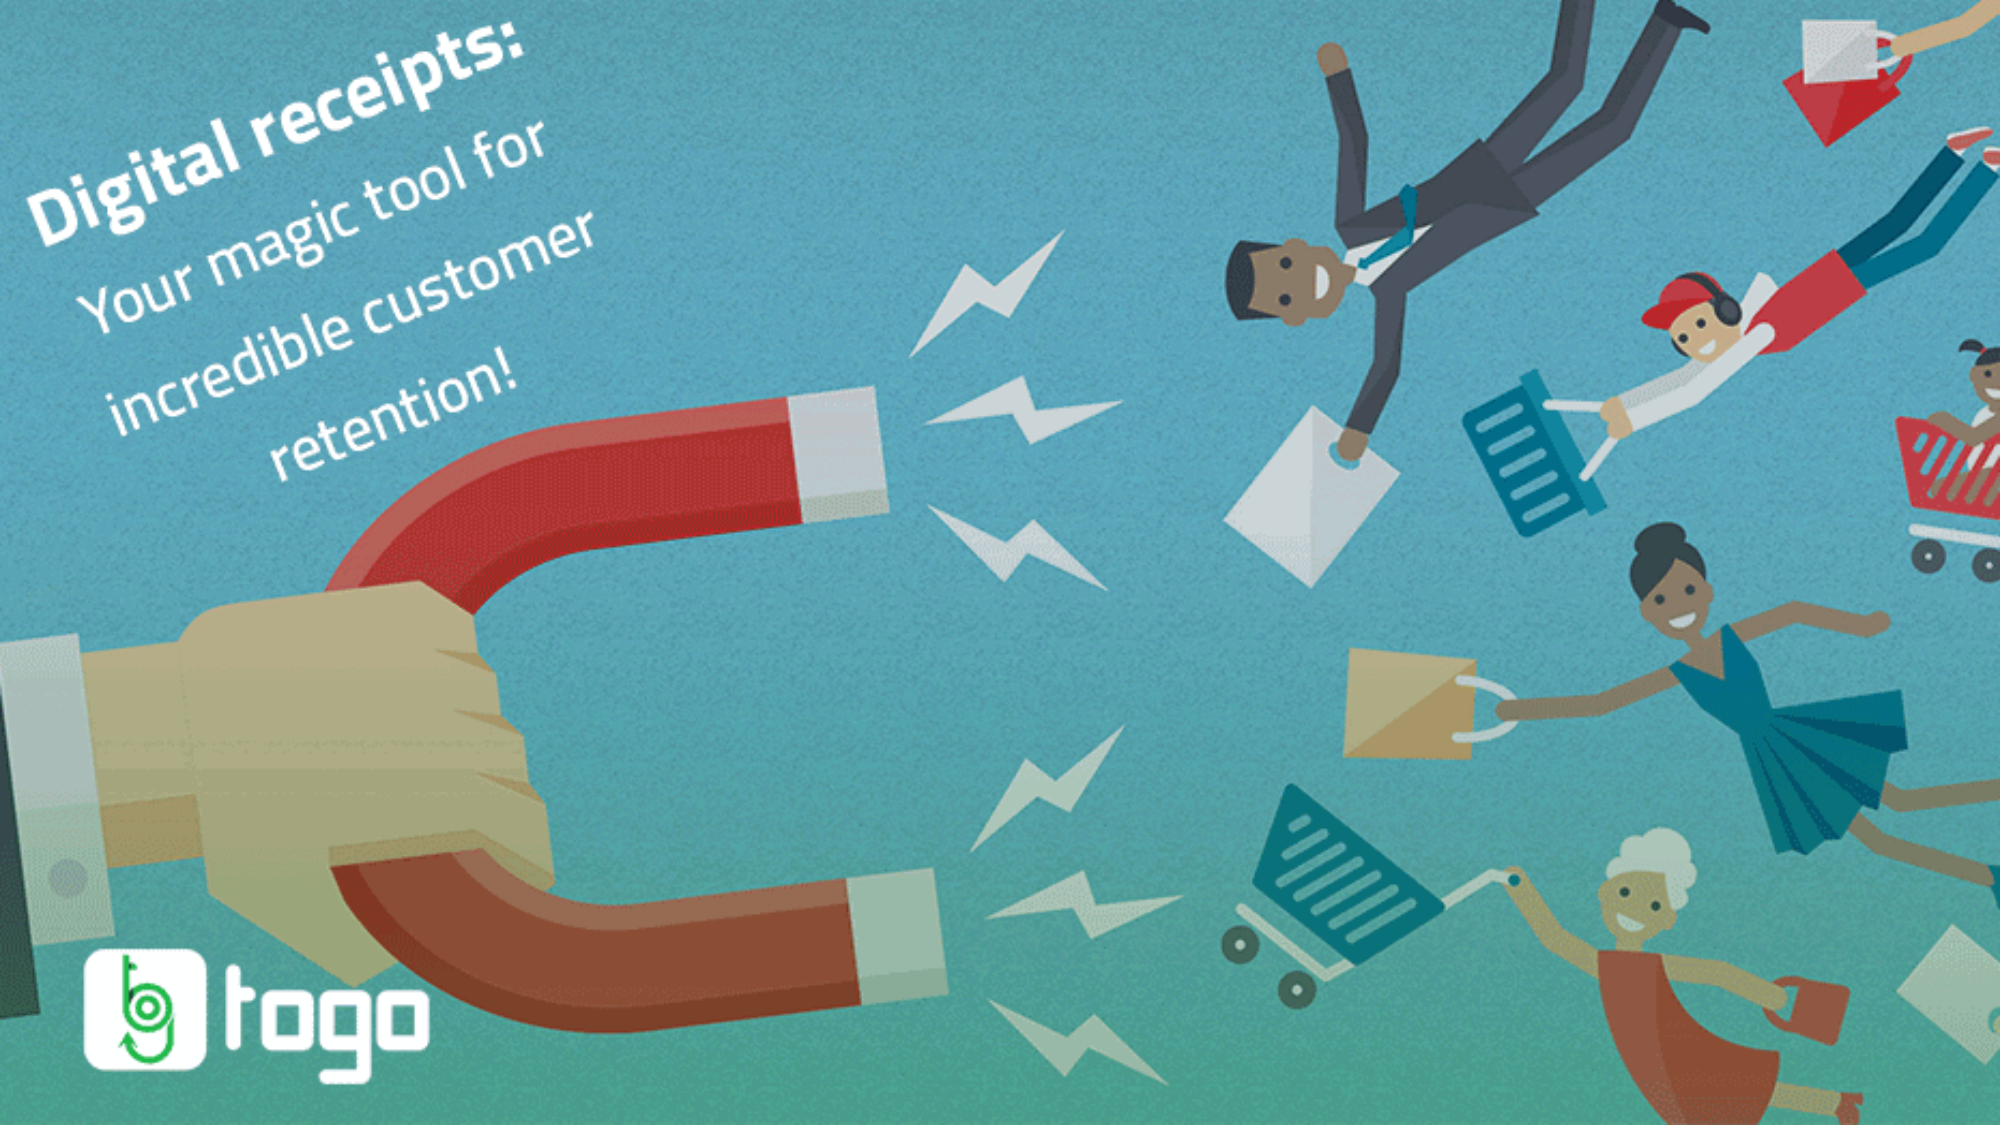 Digital receipts: Your magic tool for incredible customer retention!